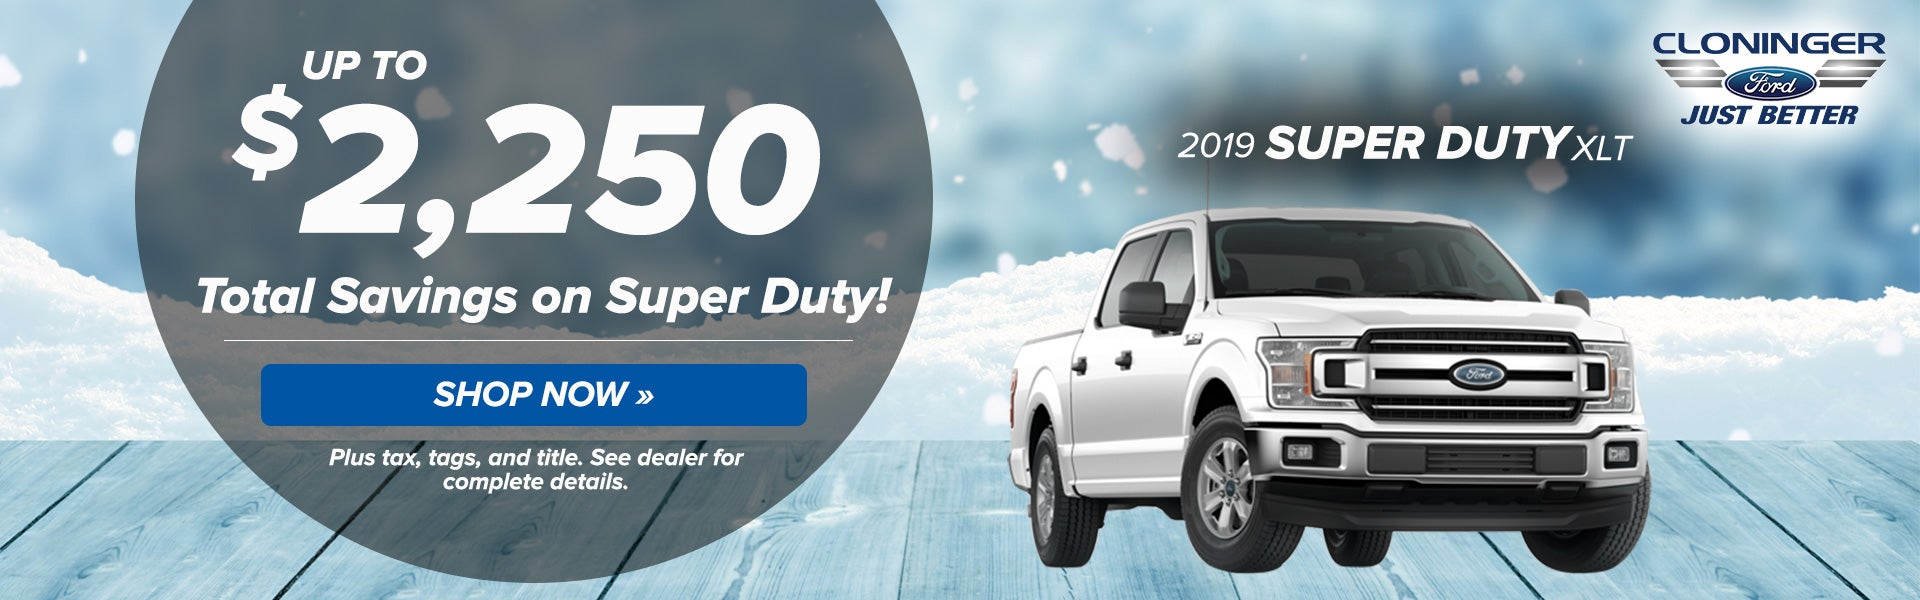 Cloninger Ford Hickory Nc >> 2019 Ford Super Duty Xlt Cloninger Ford Of Hickory Specials